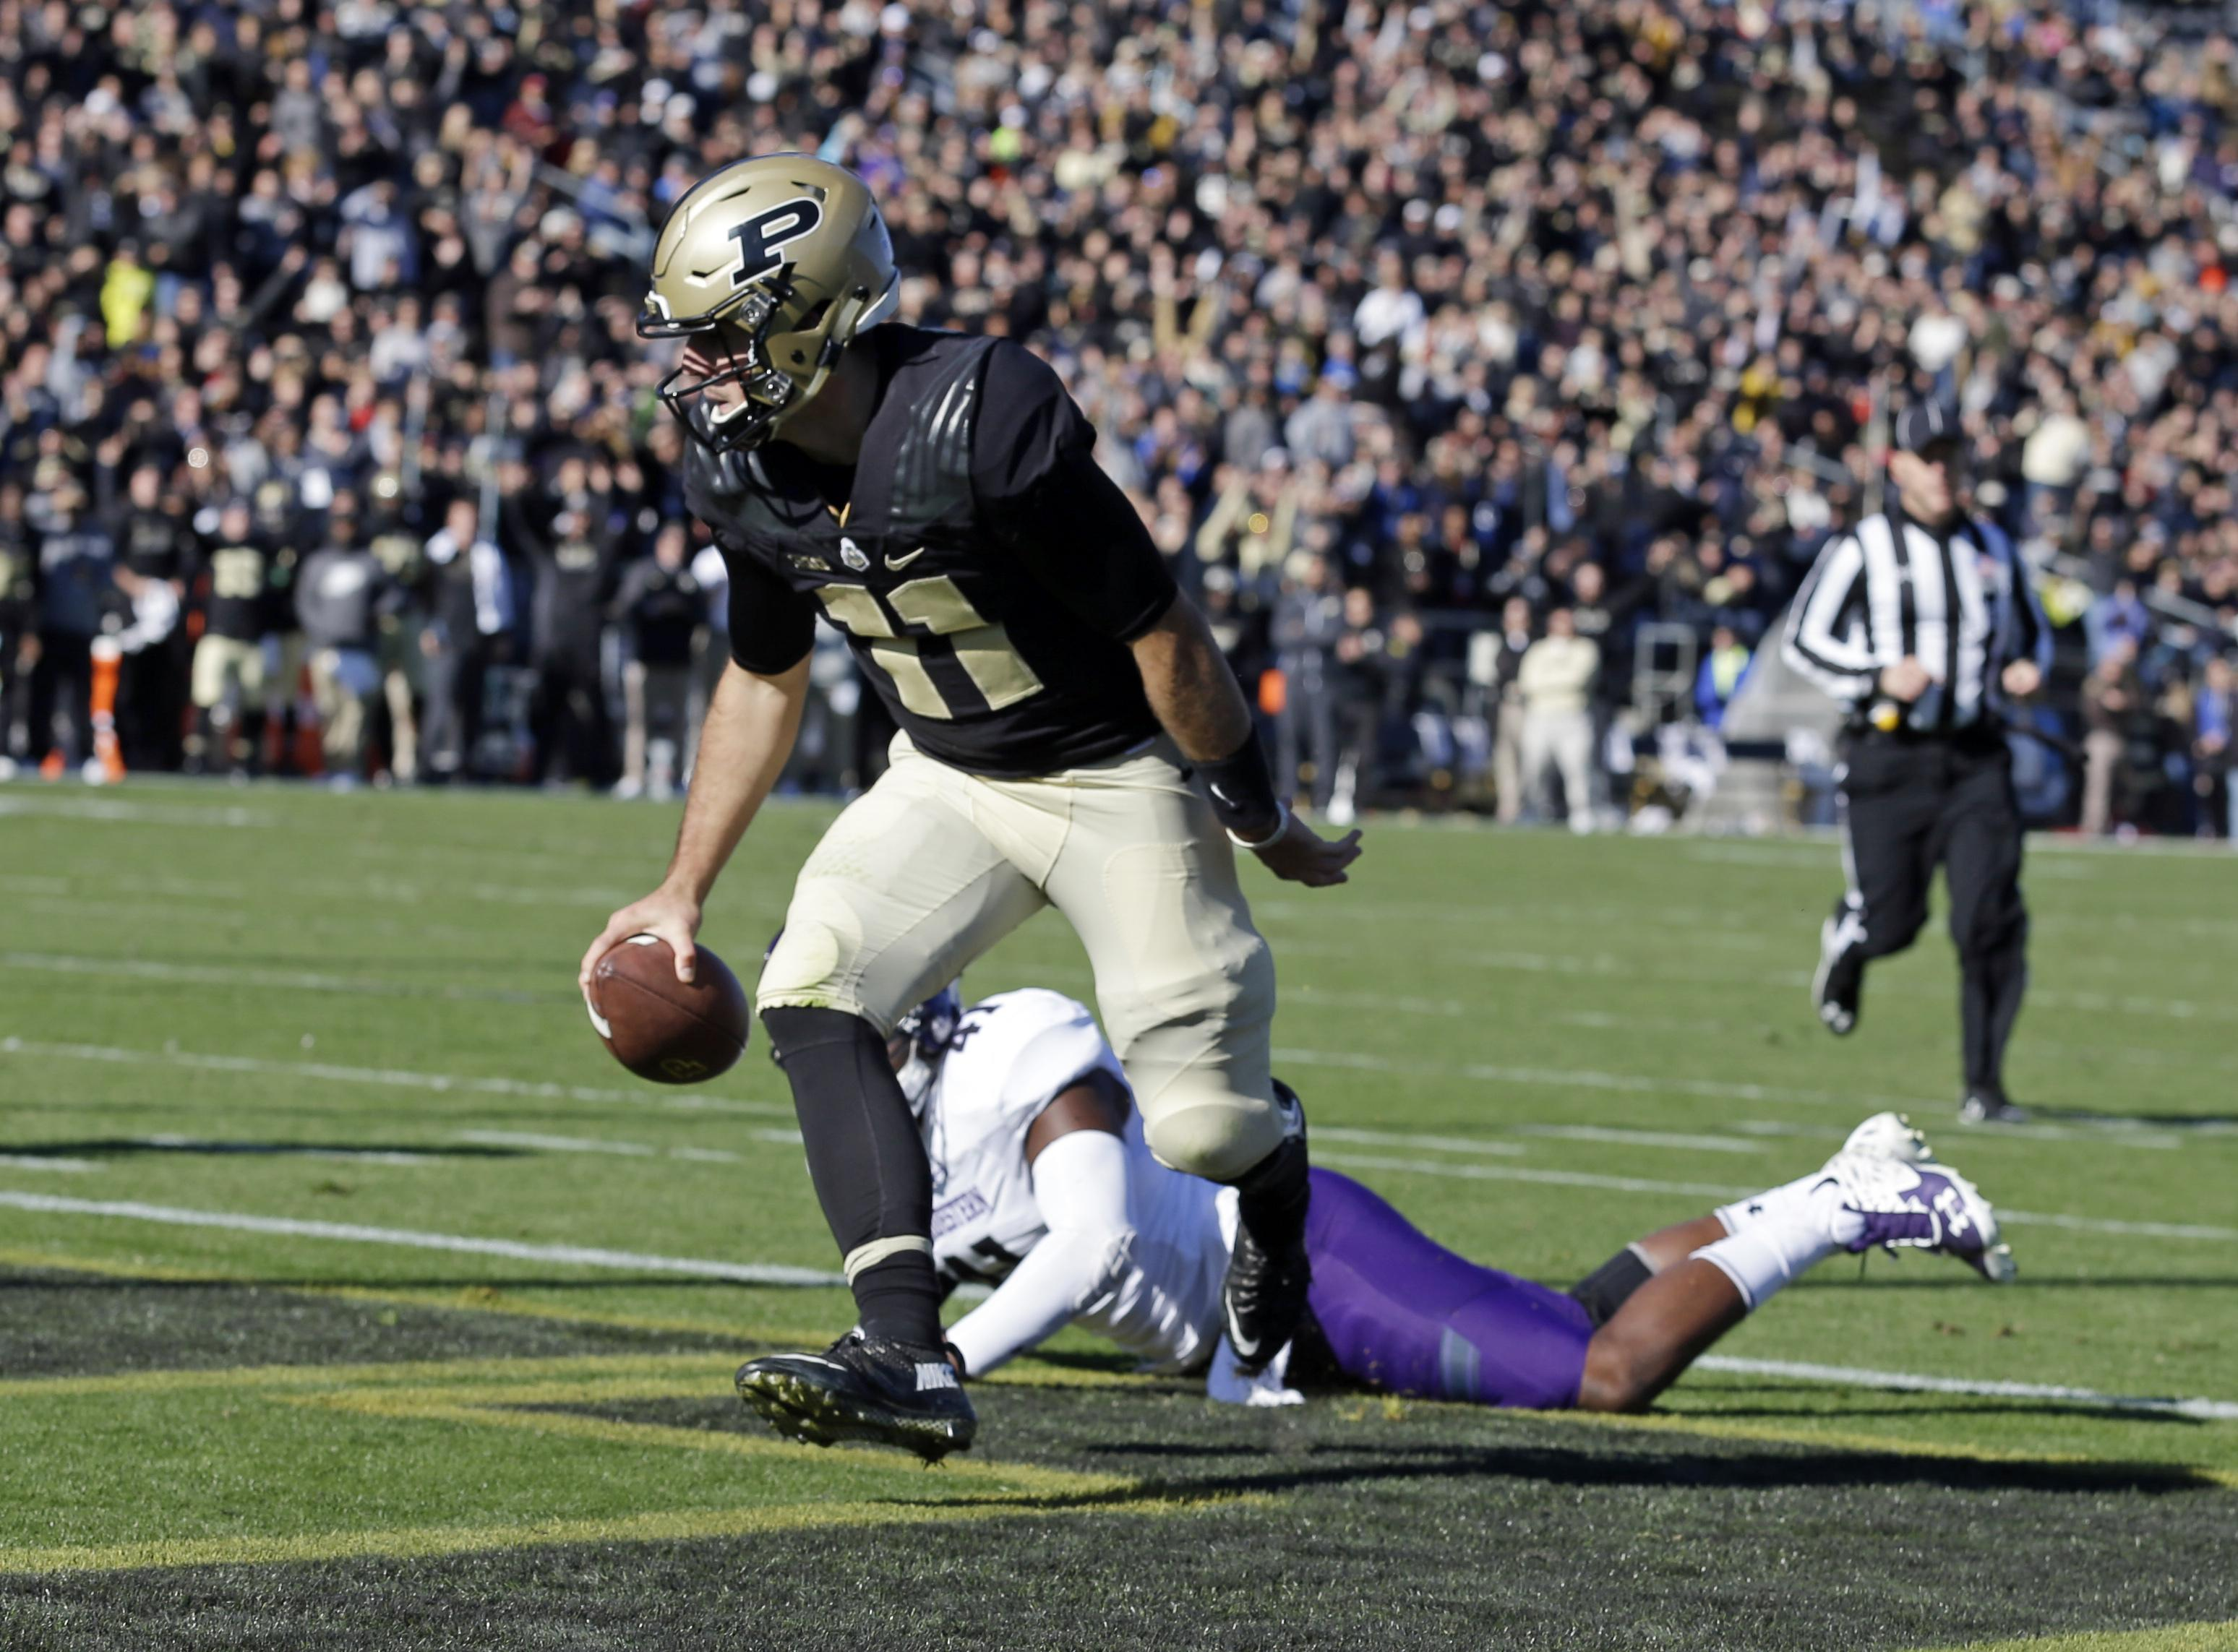 Northwestern_purdue_football